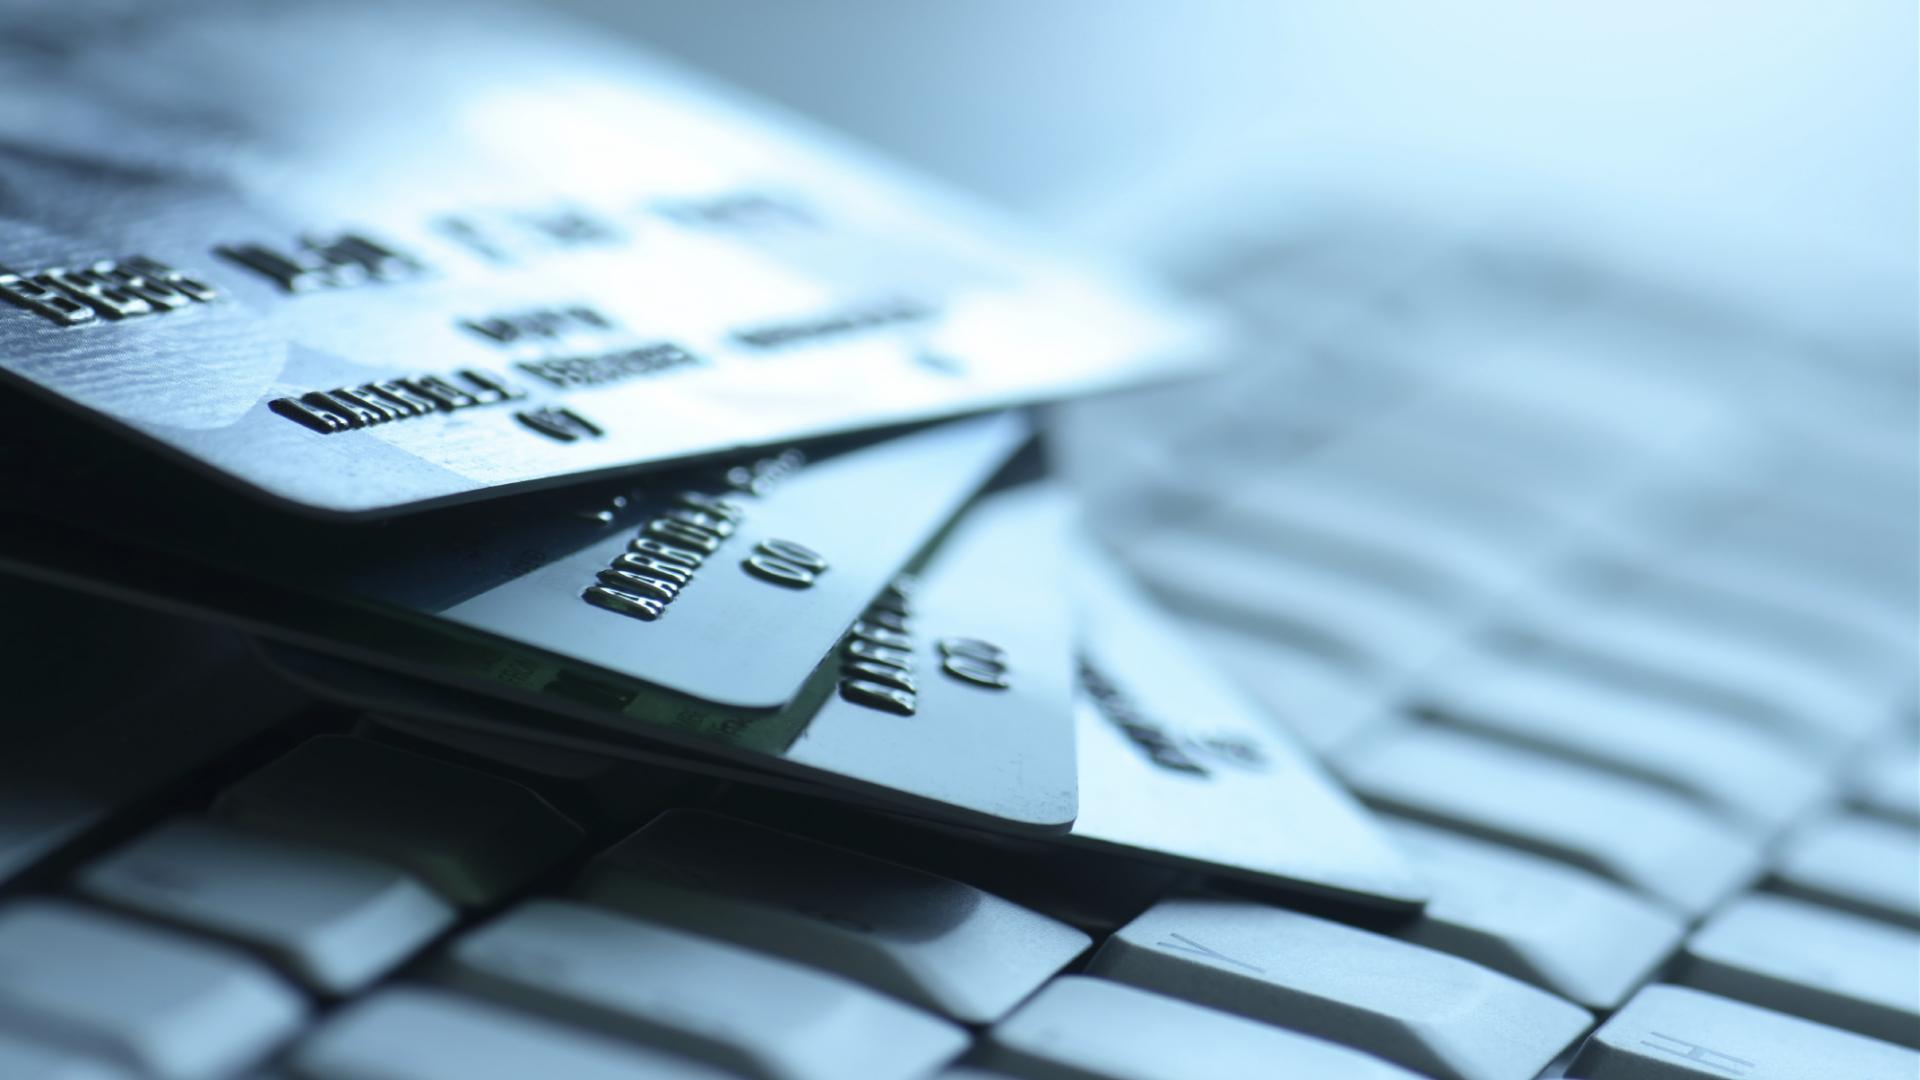 Securing card data through PCI DSS